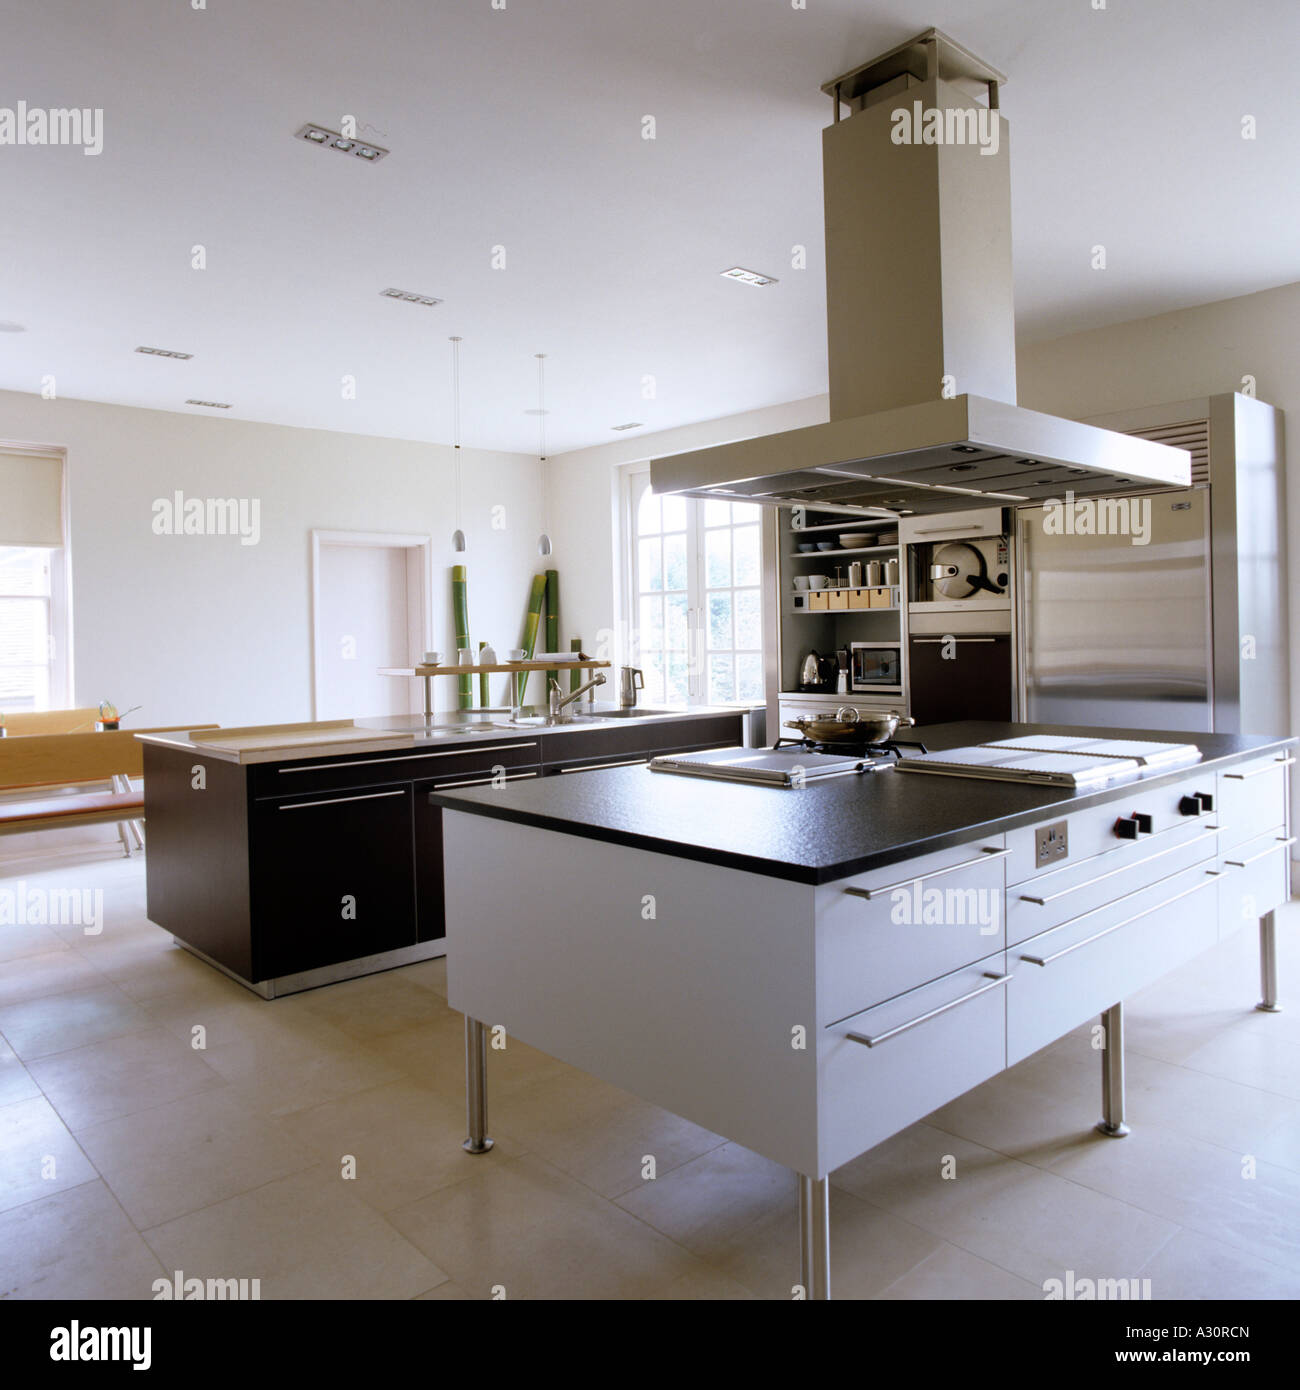 Kitchen Island Extractor Fans kitchen island large extractor fan stock photos & kitchen island